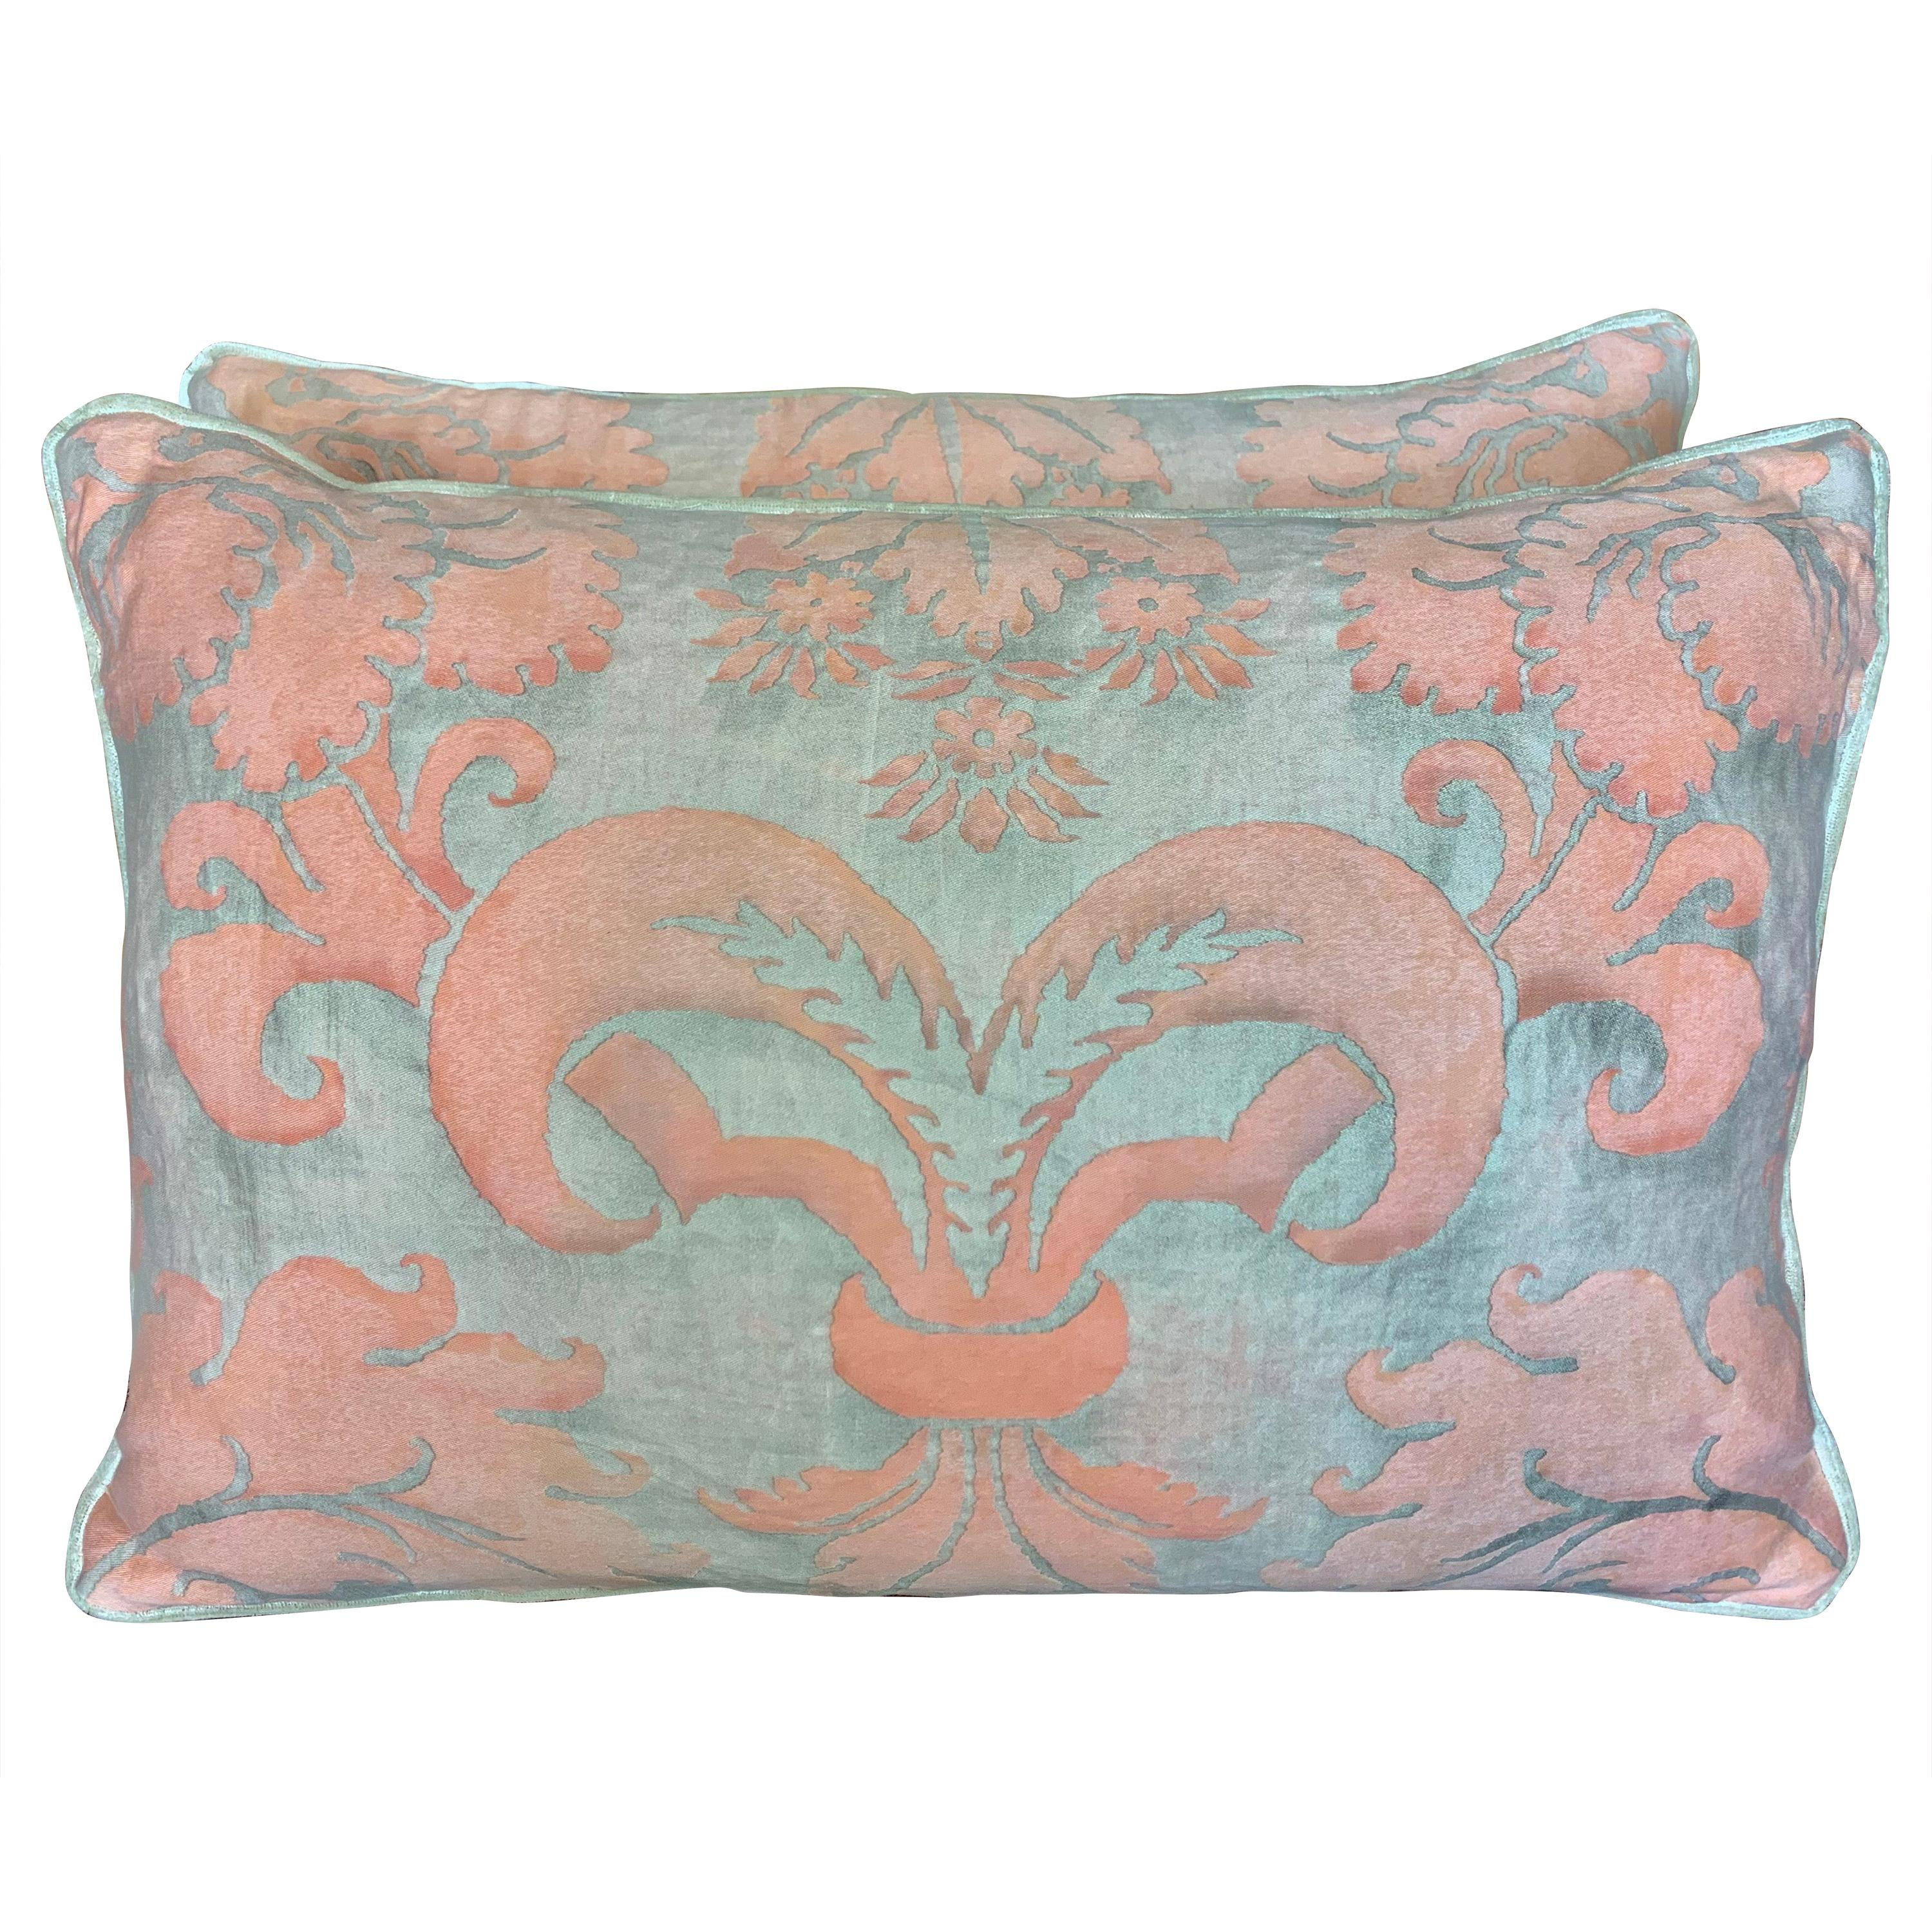 Pair of Vintage Fortuny Glicine Patterned Textile Pillows